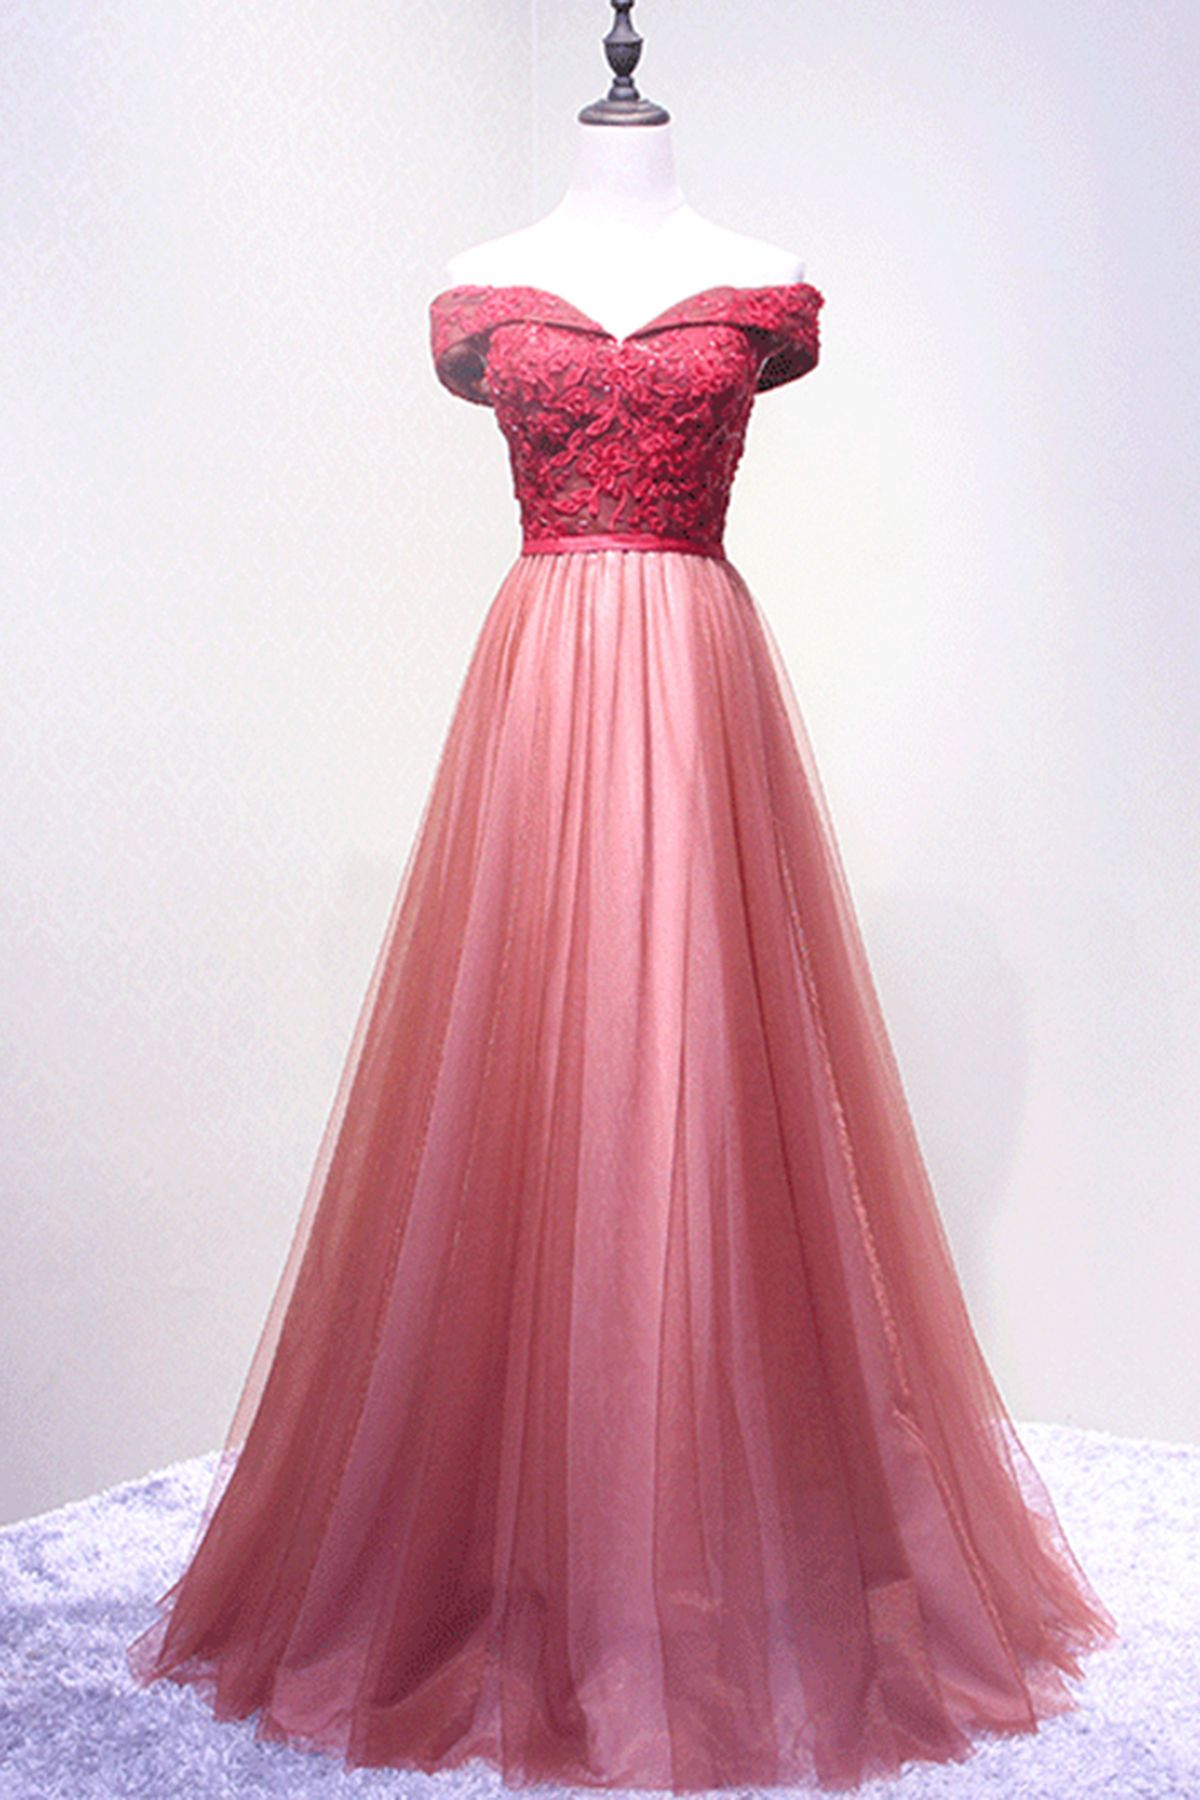 Red tulle long off shoulder aline prom dress with lace top